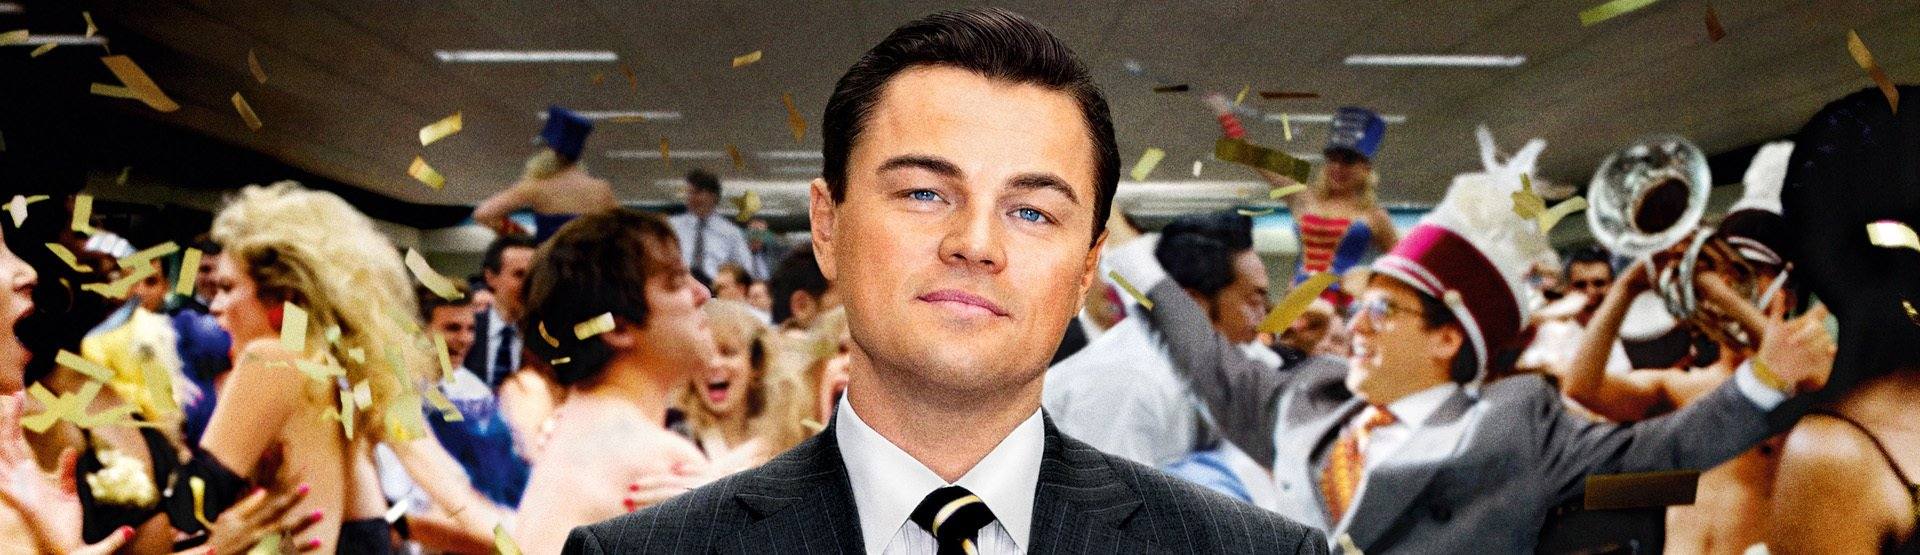 Film: The Wolf Of Wall Street feature image